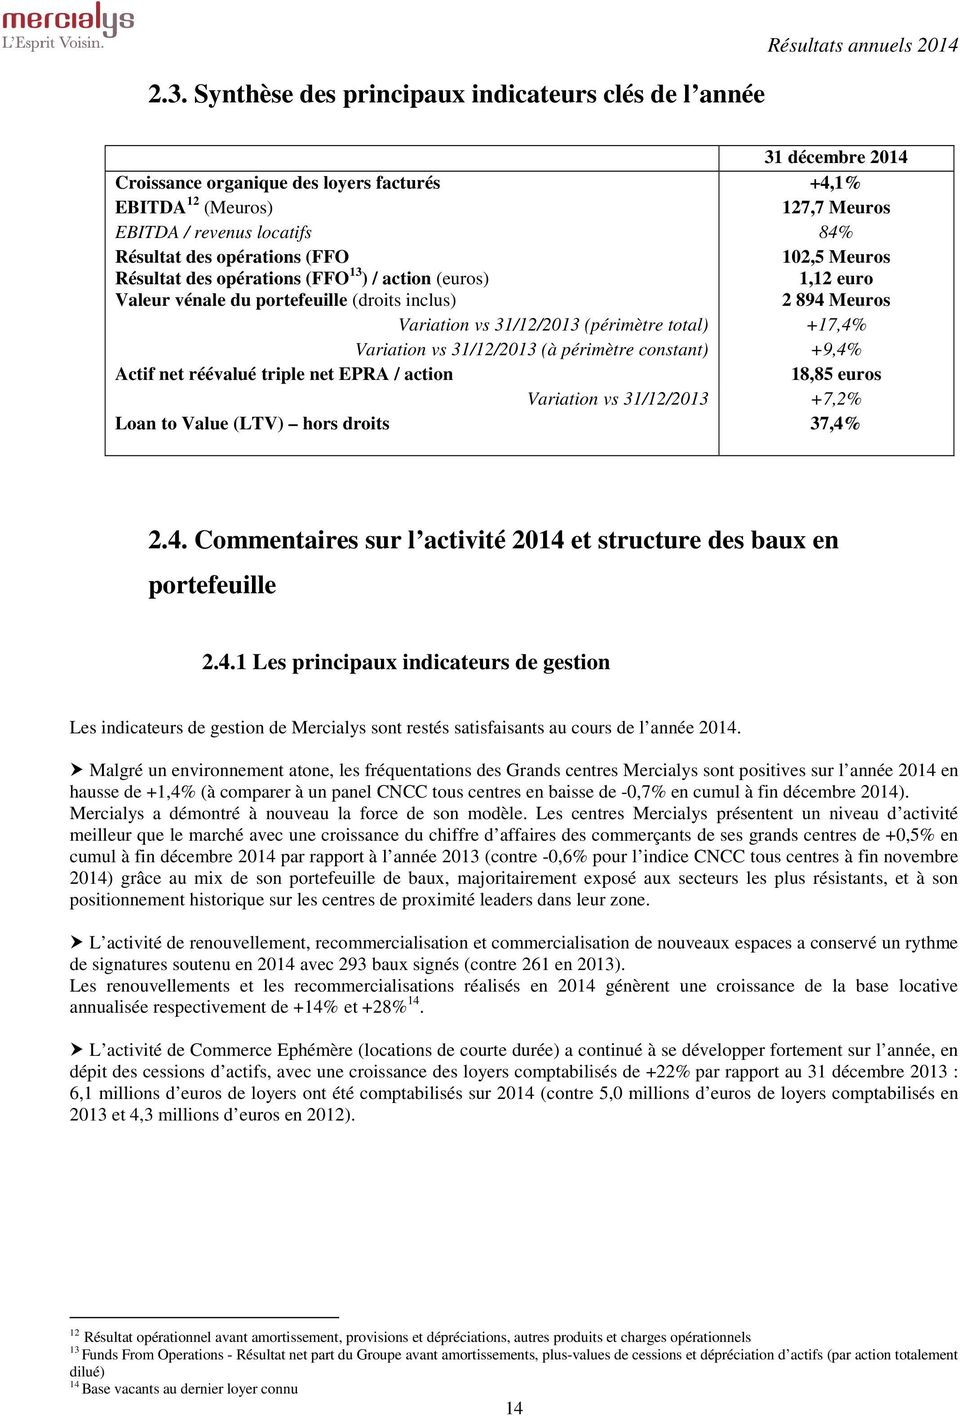 (périmètre total) +17,4% Variation vs 31/12/2013 (à périmètre constant) +9,4% Actif net réévalué triple net EPRA / action 18,85 euros Variation vs 31/12/2013 +7,2% Loan to Value (LTV) hors droits